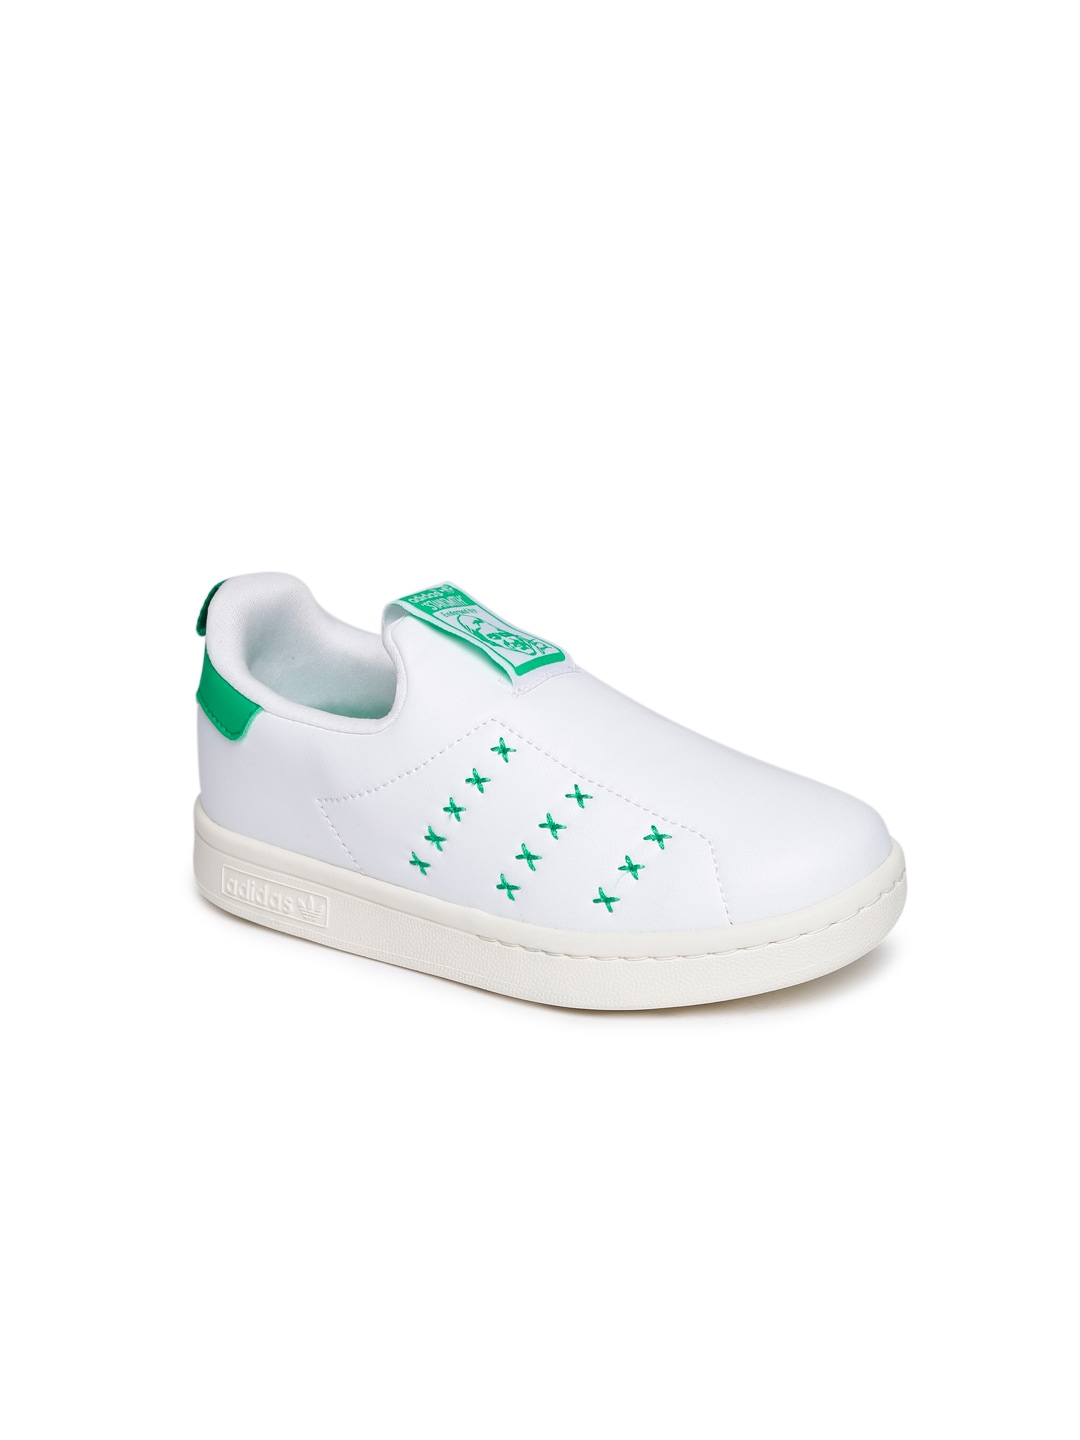 Buy Puma Kids White Leather Turin II AC PS Sneakers - Casual Shoes ... cab329ed6